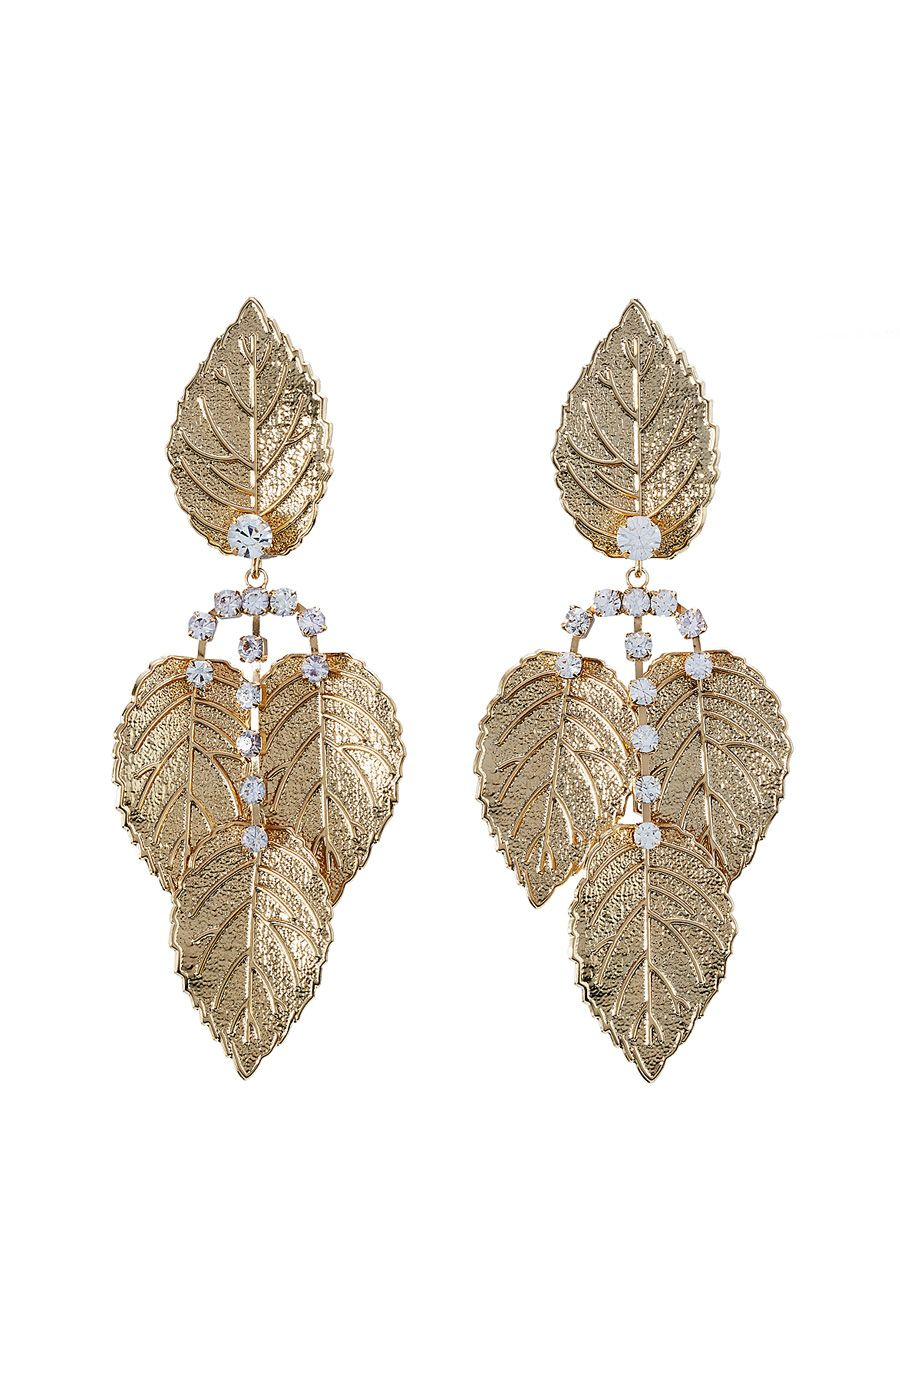 KENNETH JAY LANE - Embellished Earrings | STYLEBOP